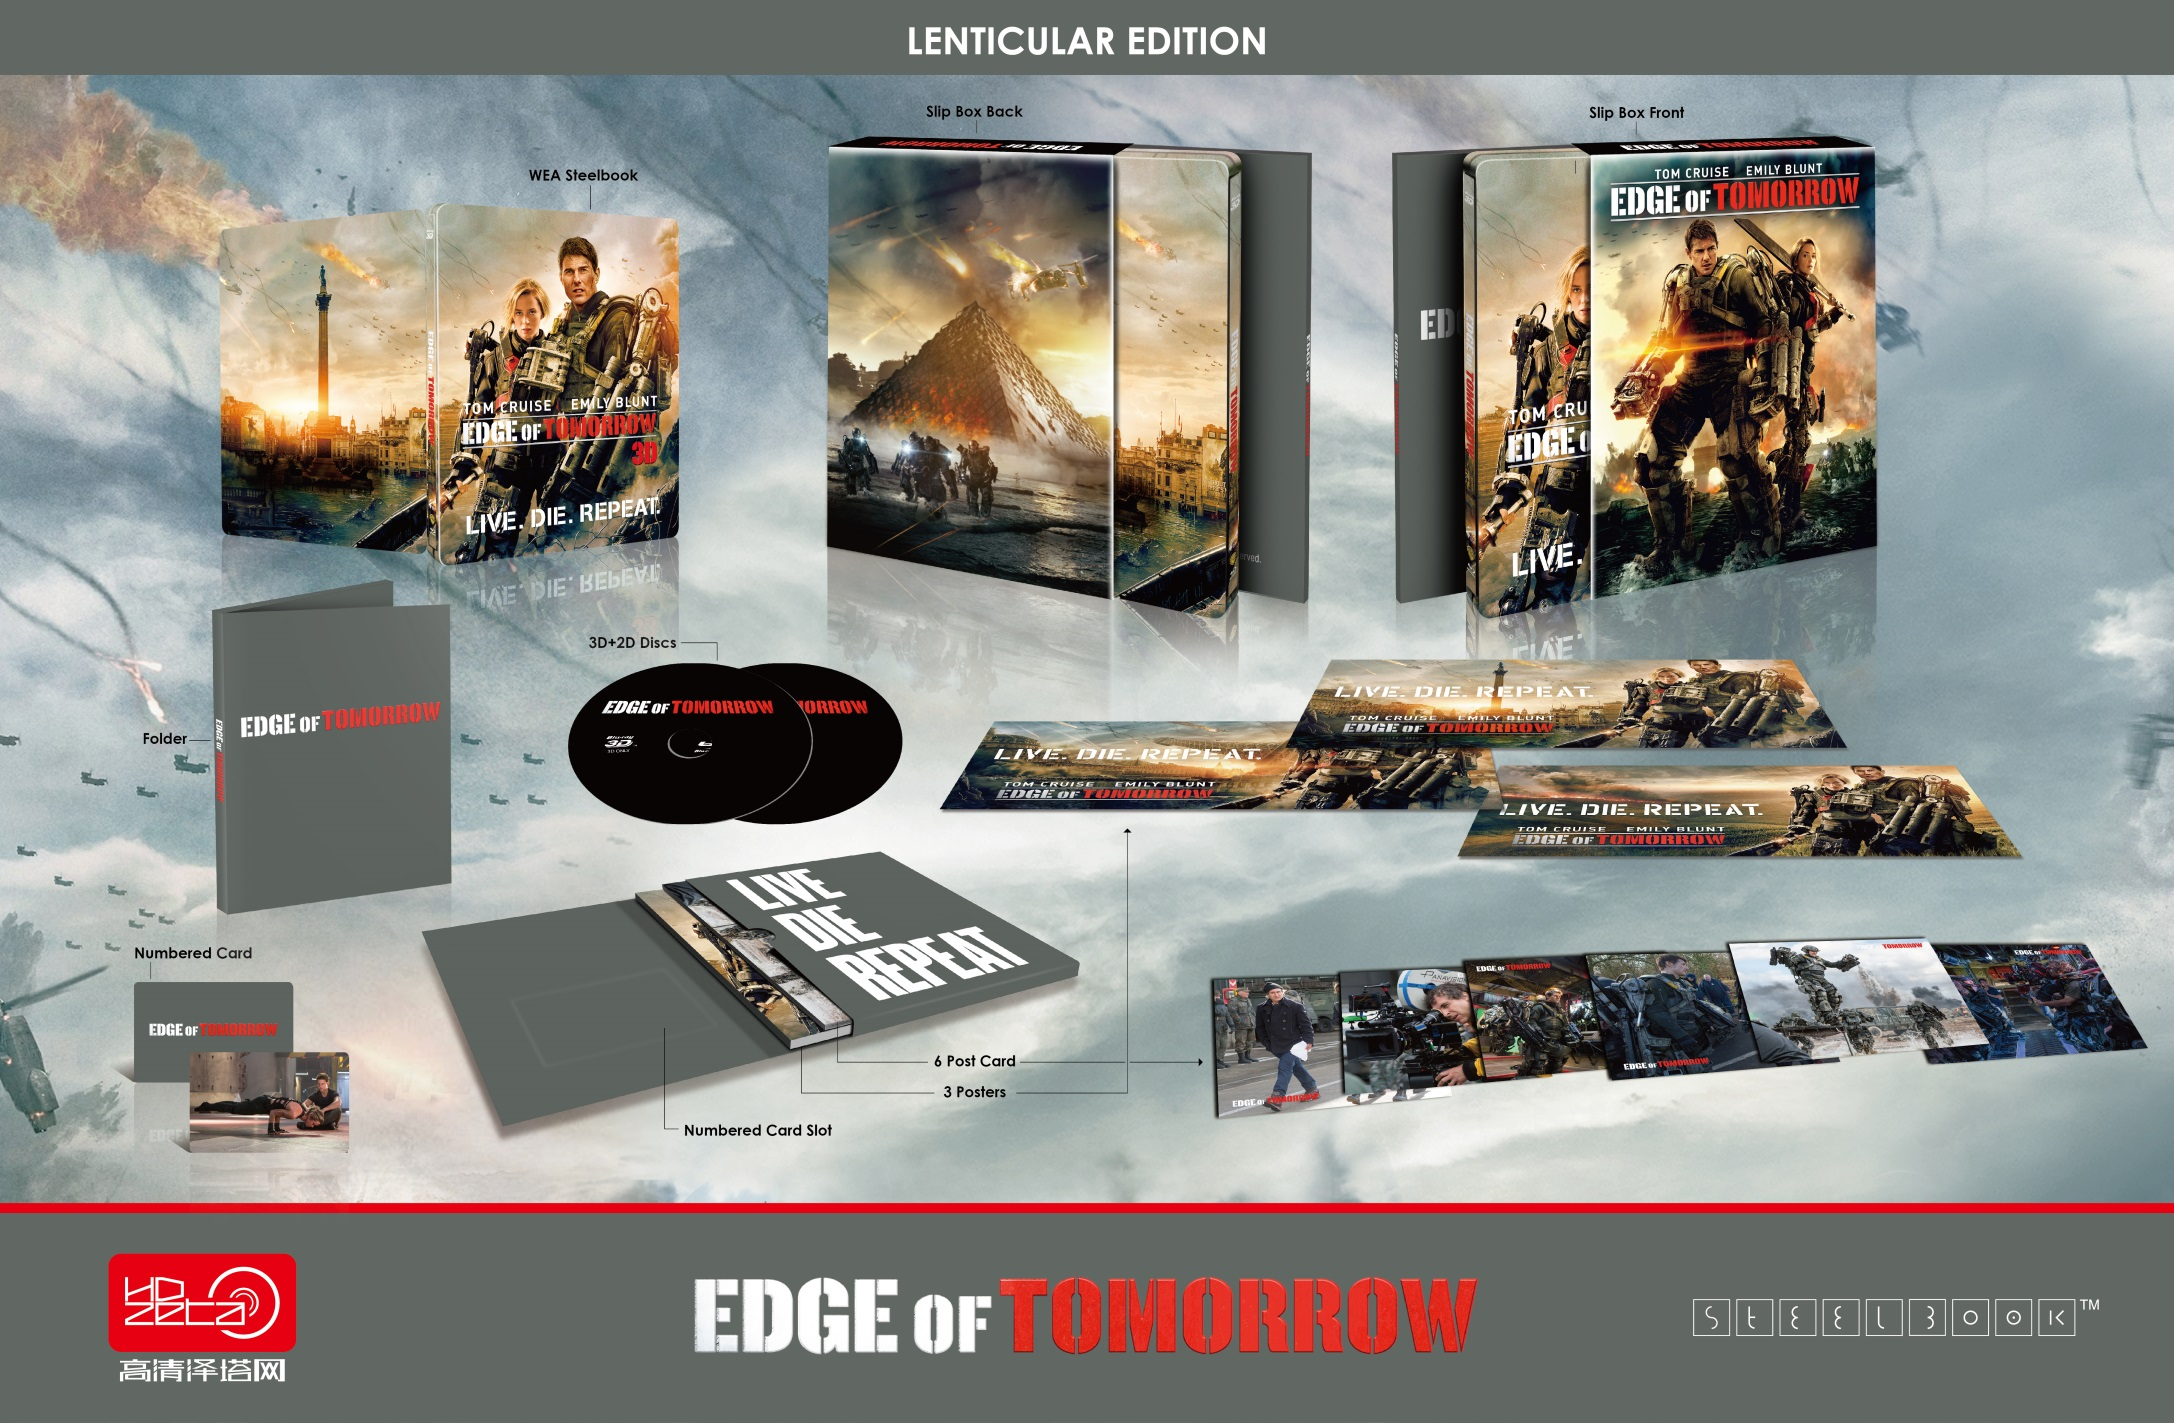 Edge Of Tomorrow HDzeta Exclsive Lenticular Edition